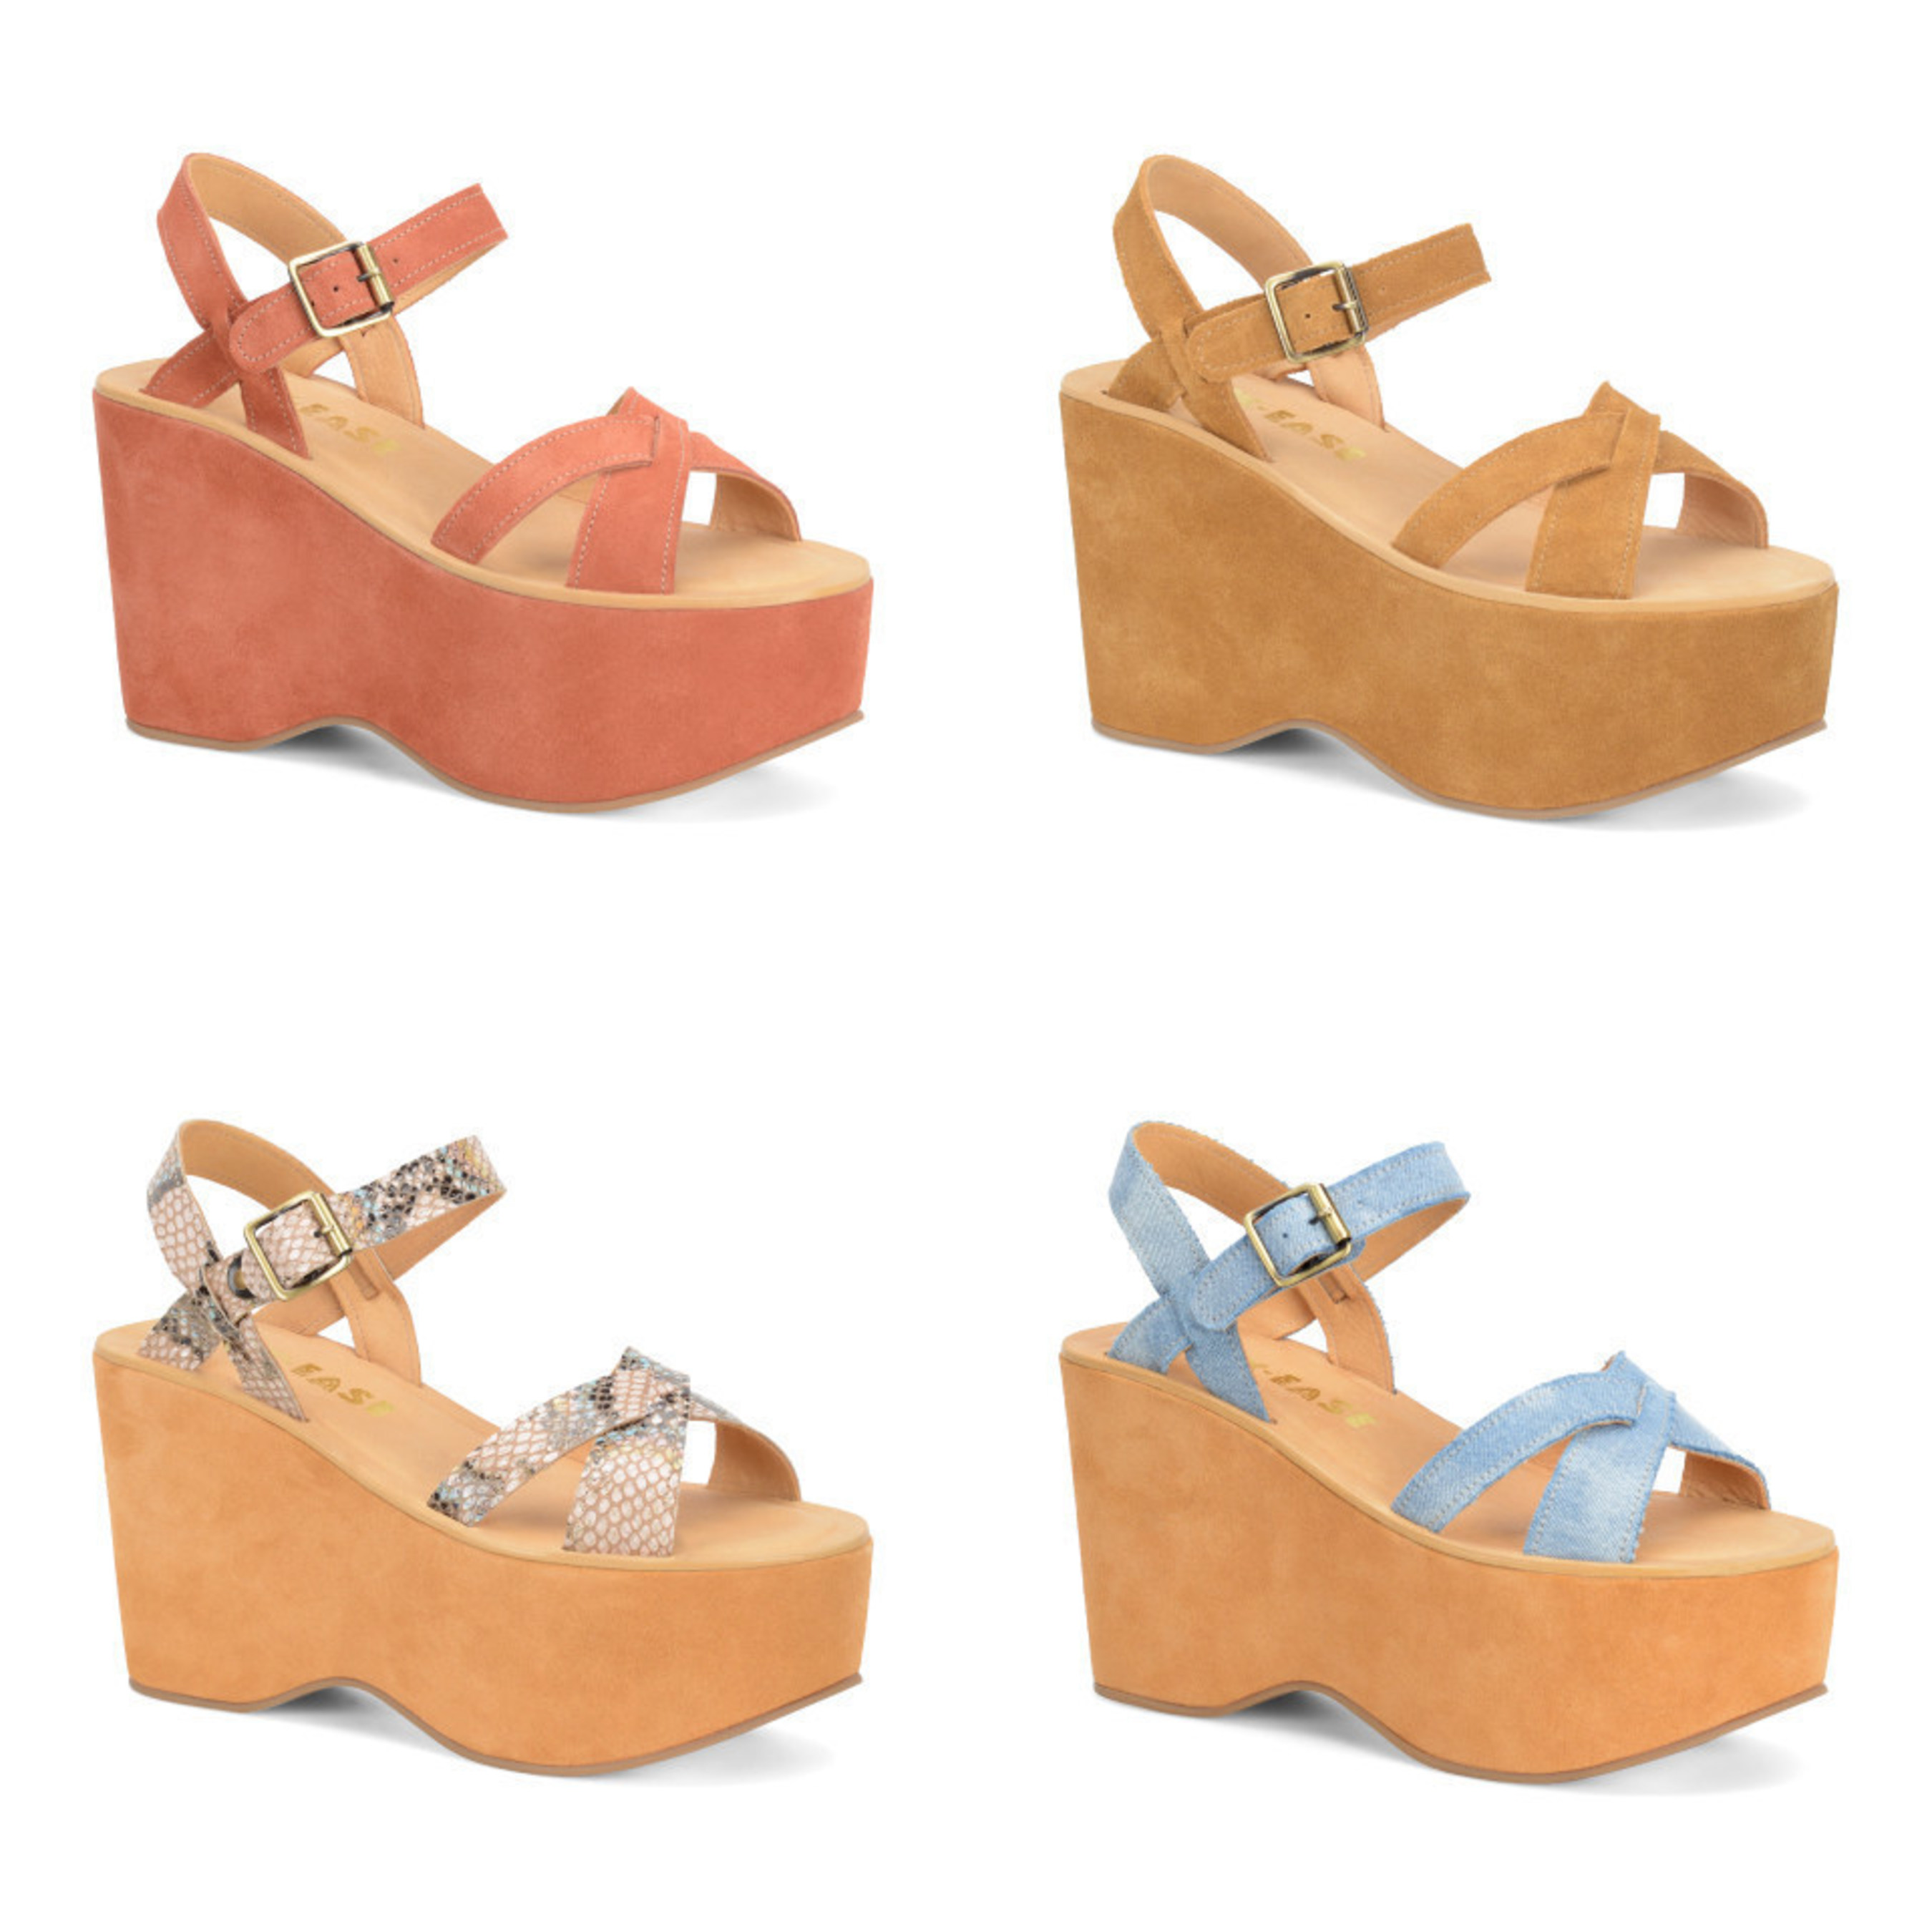 e05a0c9eb46 Kork-Ease X Free People Heights Platform in rust suede